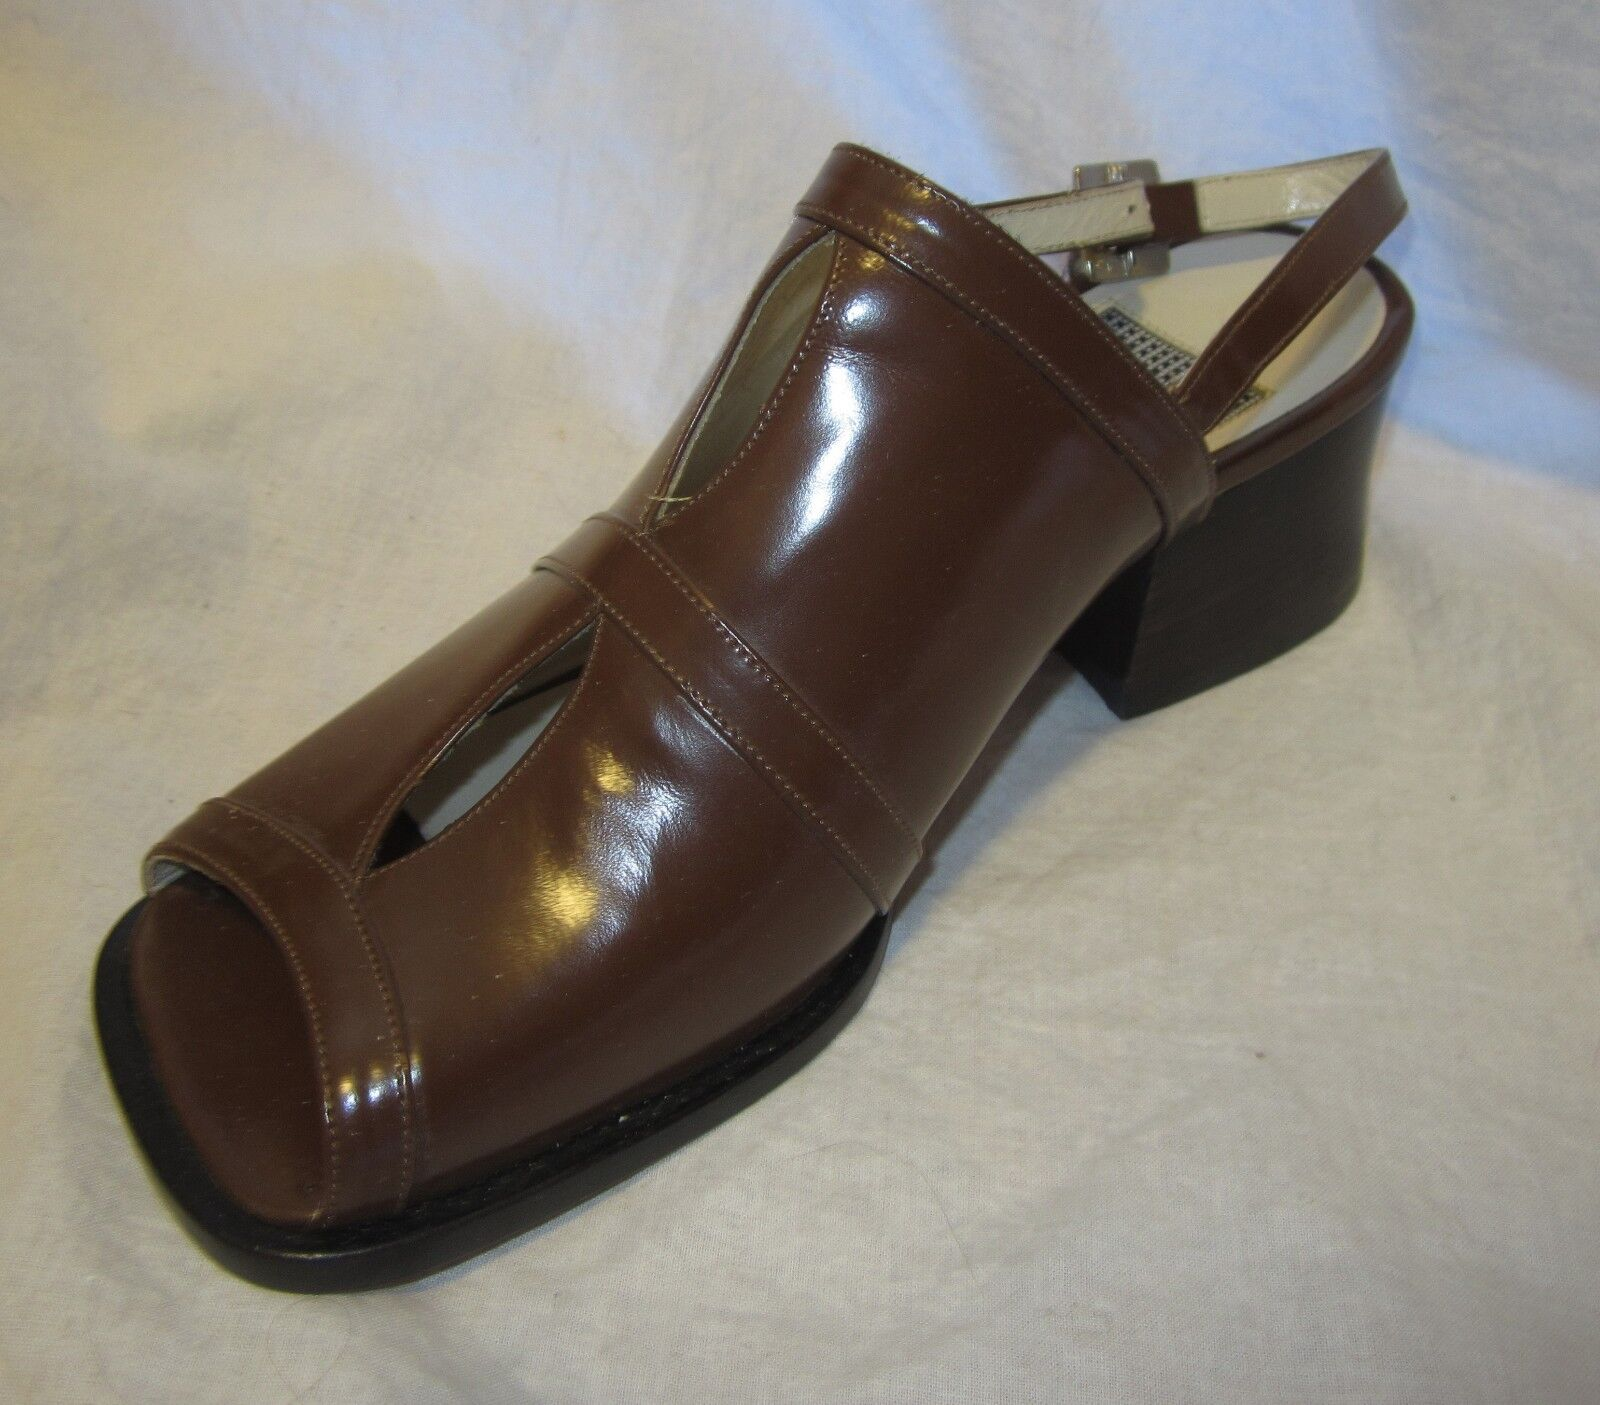 New DOMINICI Slingback Slides shoes 7.5 MADE IN ITALY Cut-Out Detail Latte